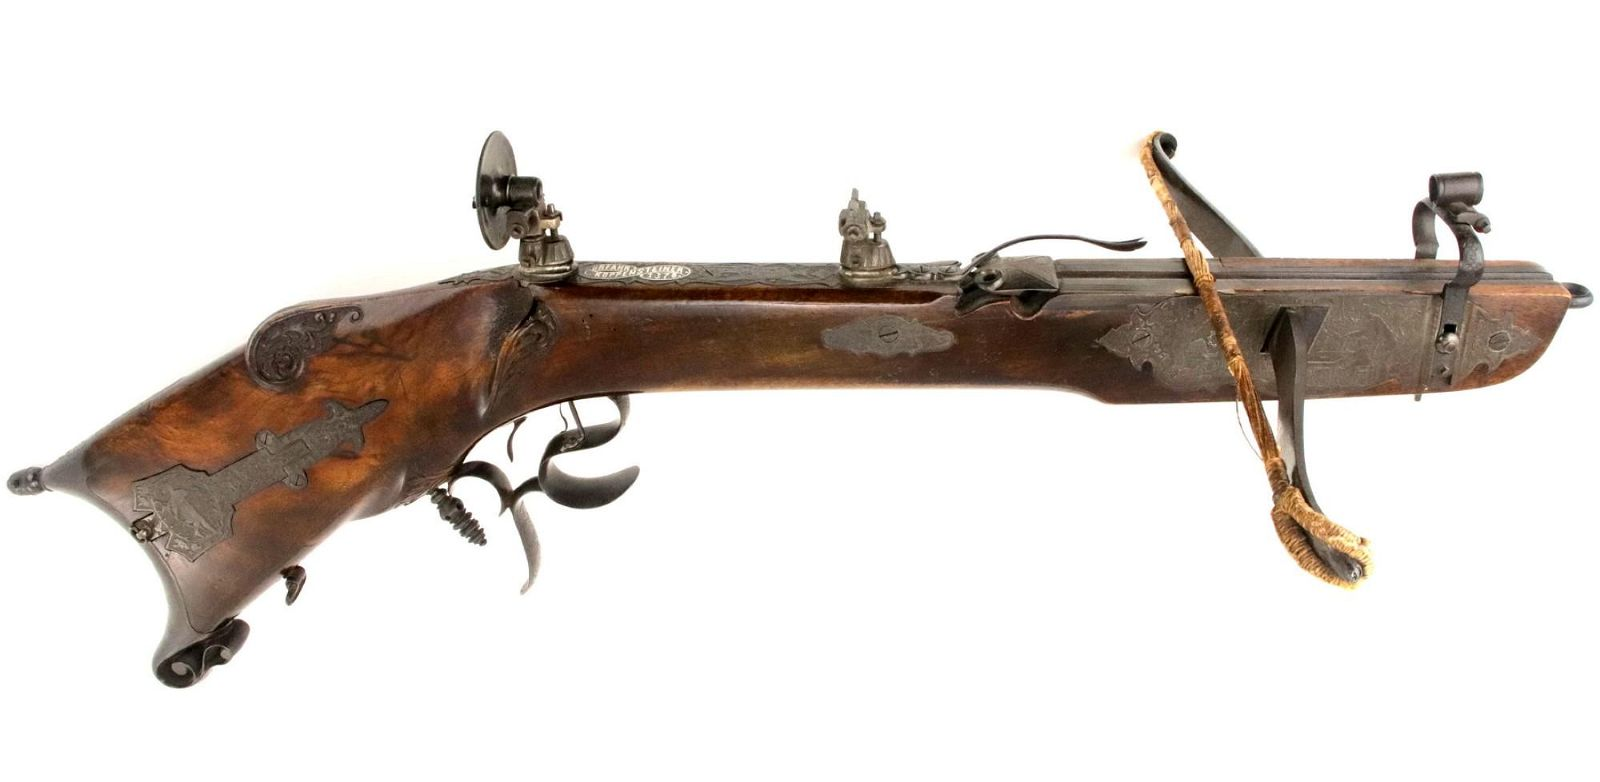 Exquisite Presentation 1878 German Crossbow with